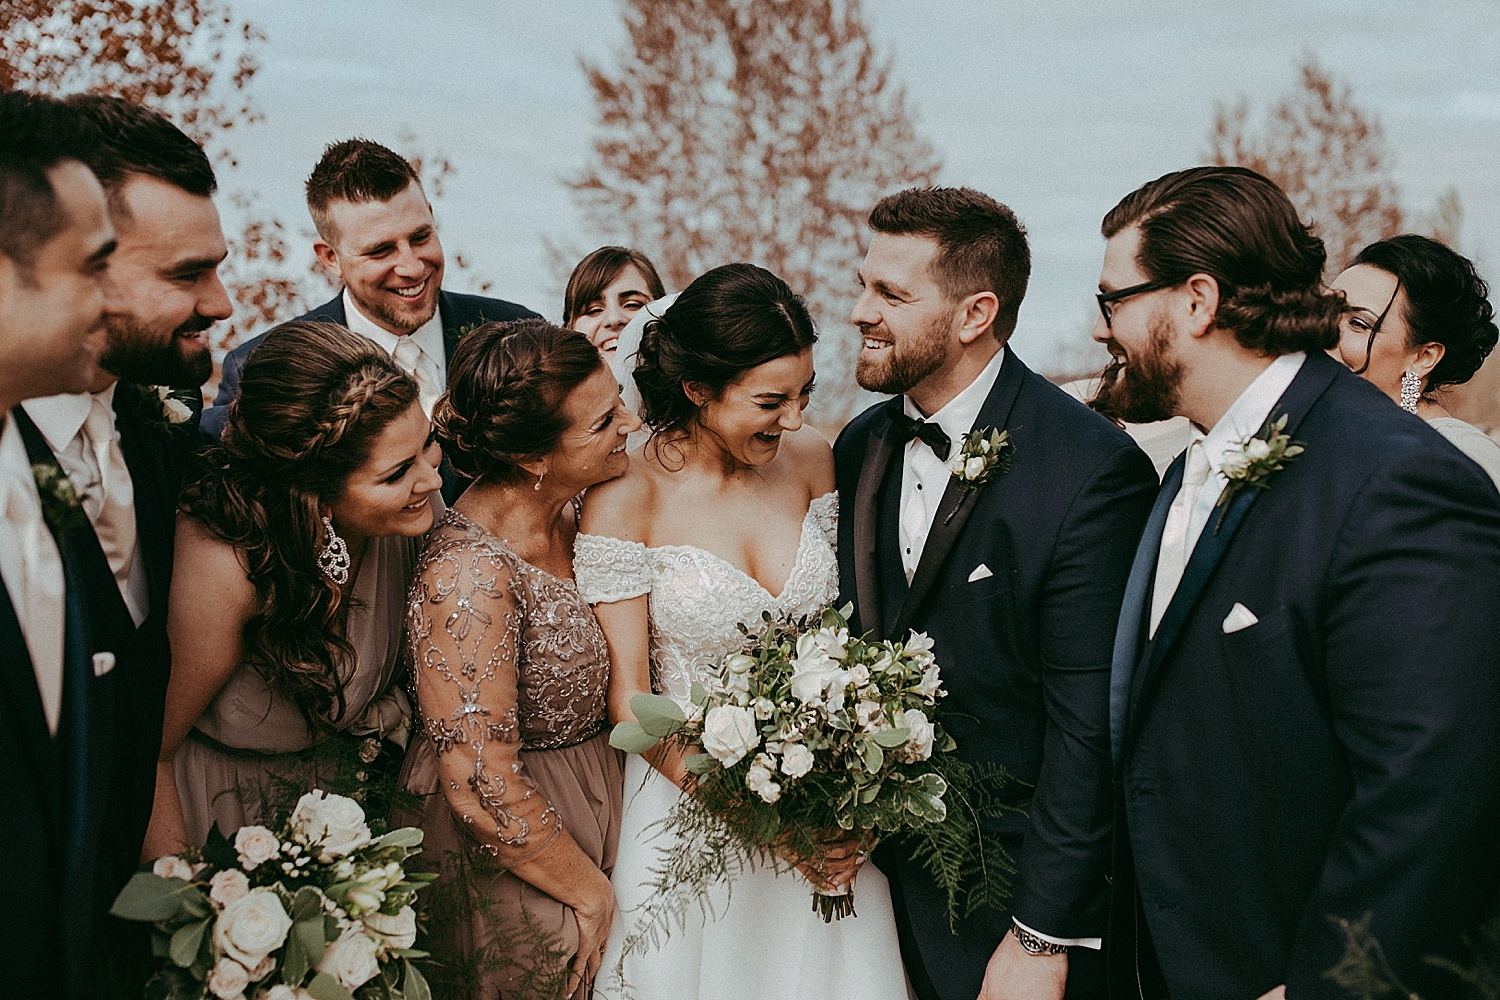 wedding party laughing together, wedding photography